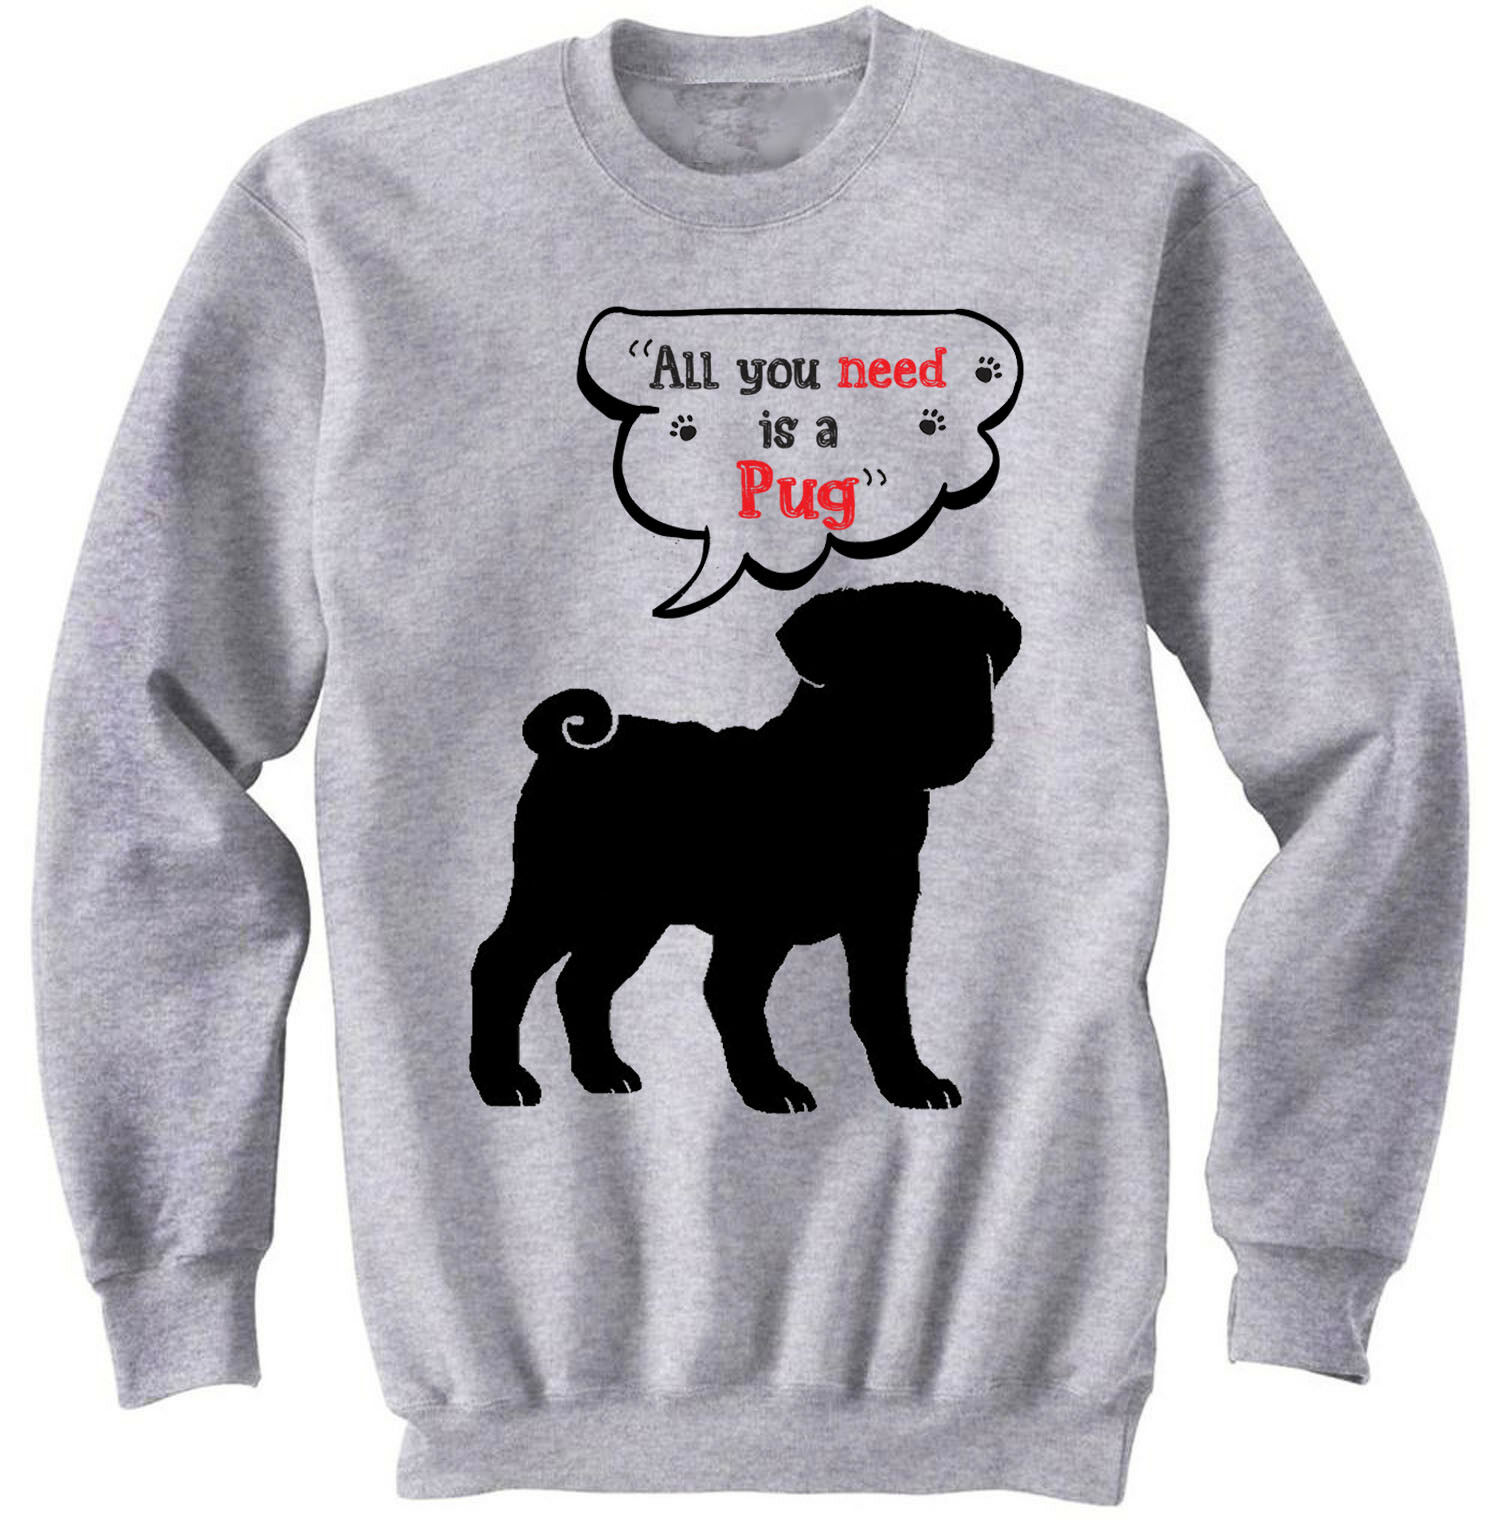 Pug p all you need - NEW COTTON GREY SWEATSHIRT- ALL SIZES